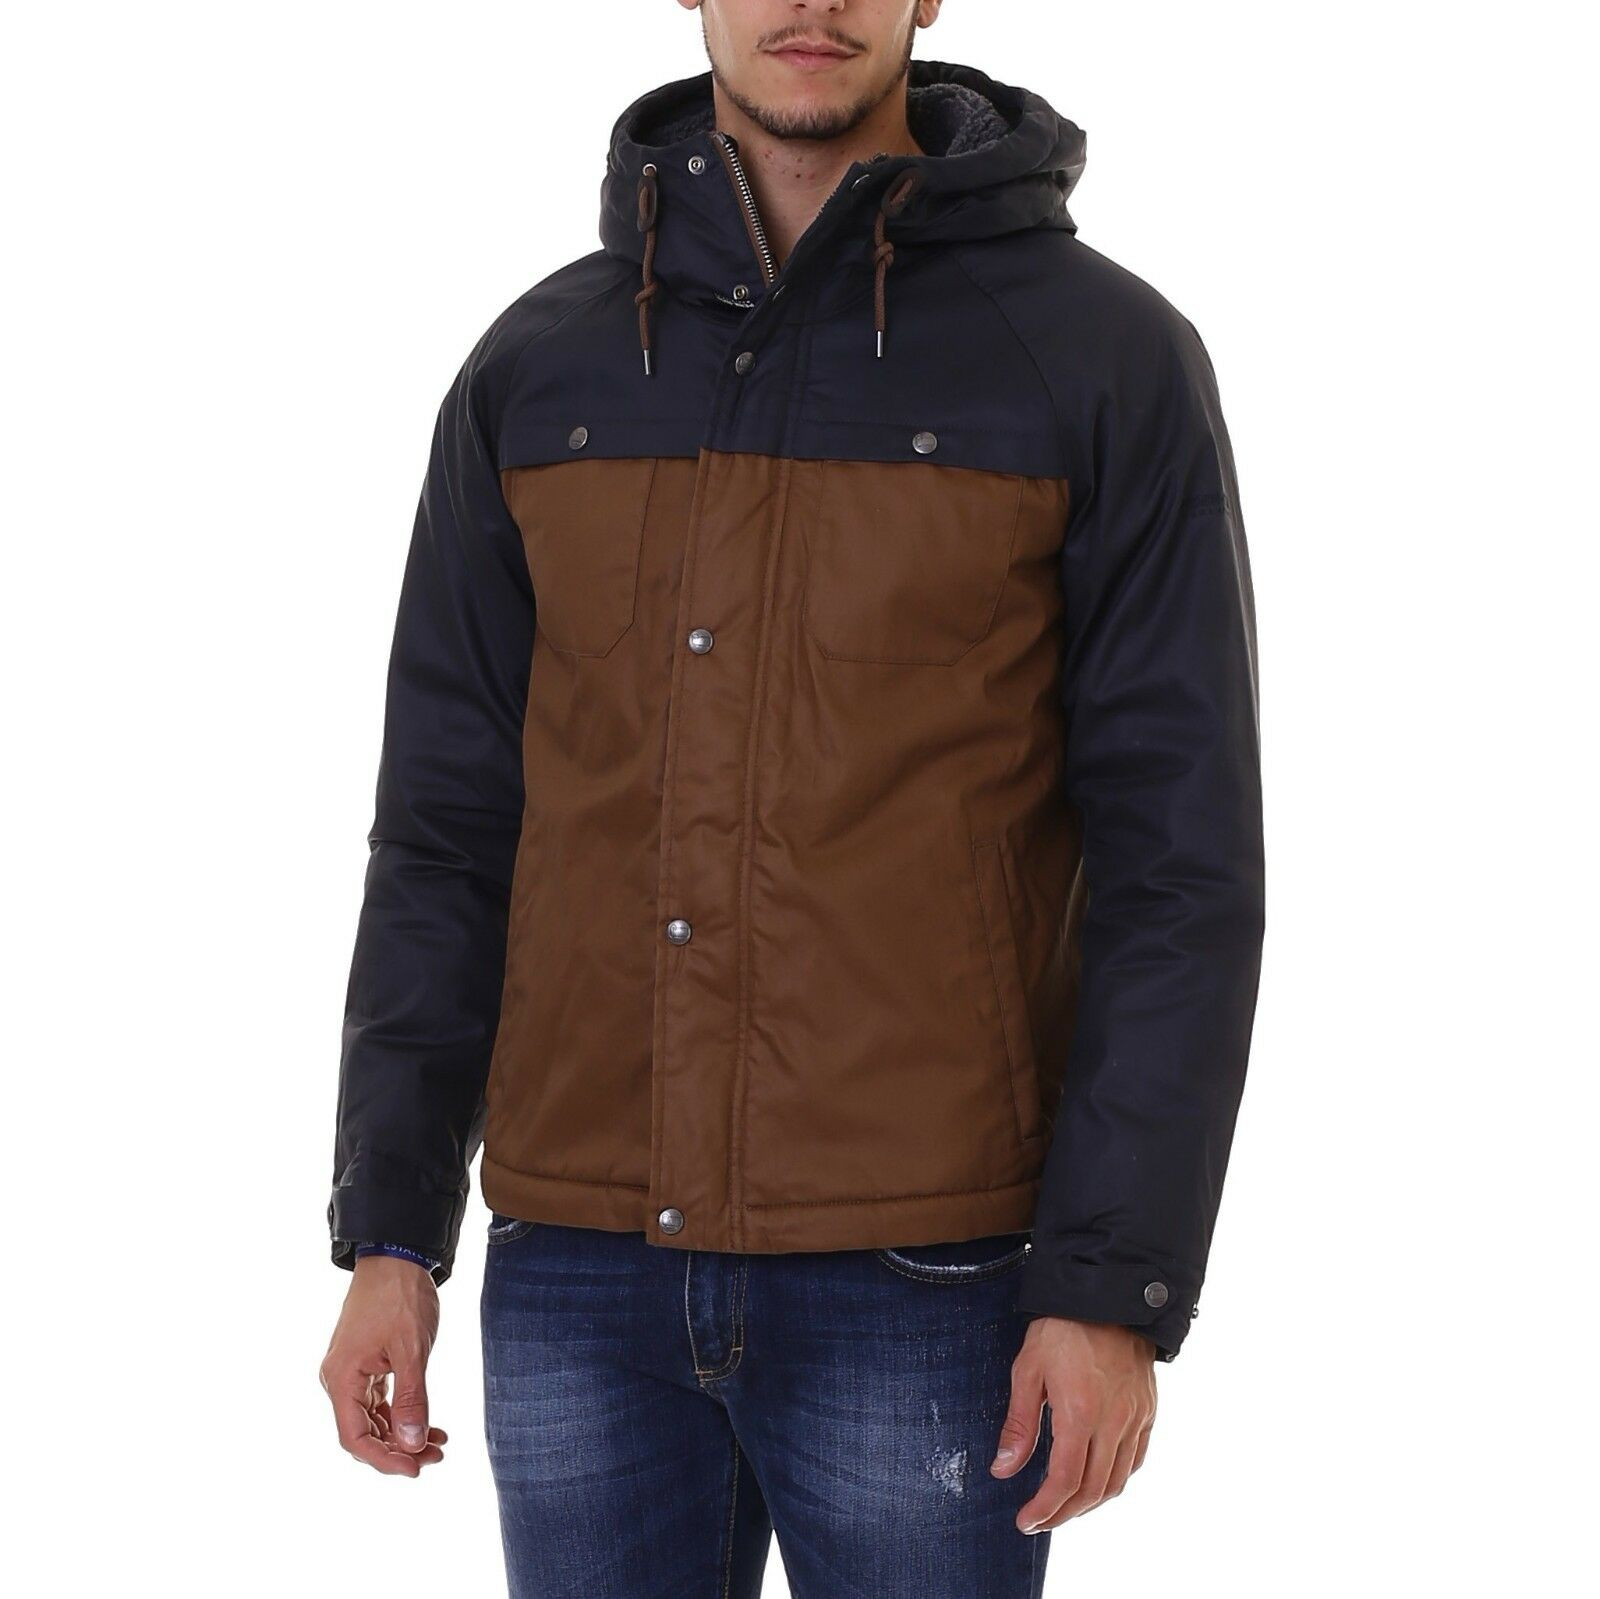 SCONTO 20% PENN-RICH WOOLRICH BROKEN TWILL JACKET GIACCA COTONE CERATO GIACCONE